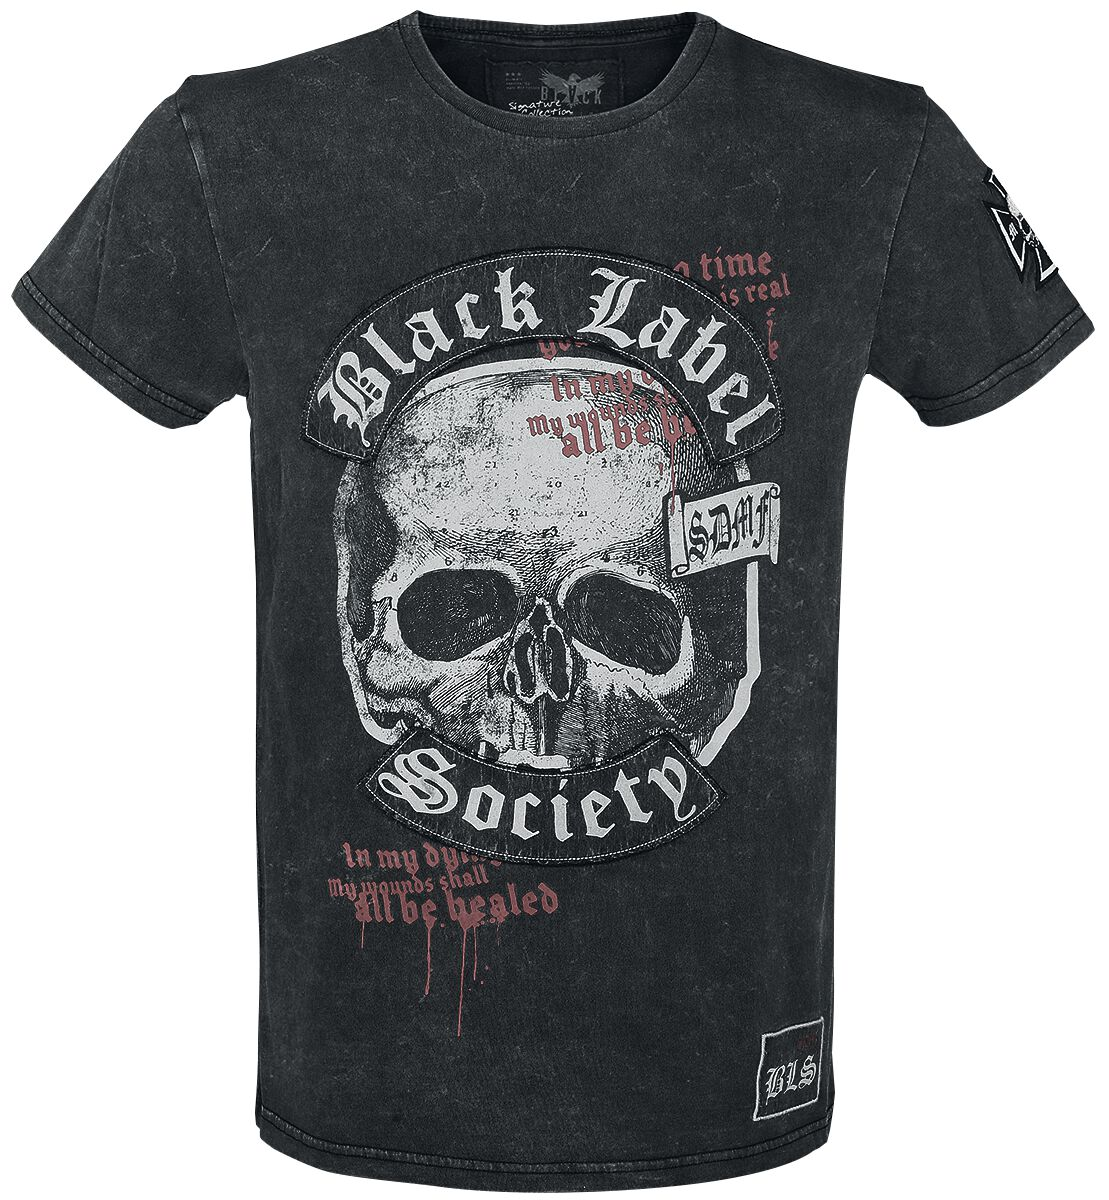 Marka własna - Koszulki - T-Shirt Black Label Society EMP Signature Collection T-Shirt szary - 344264